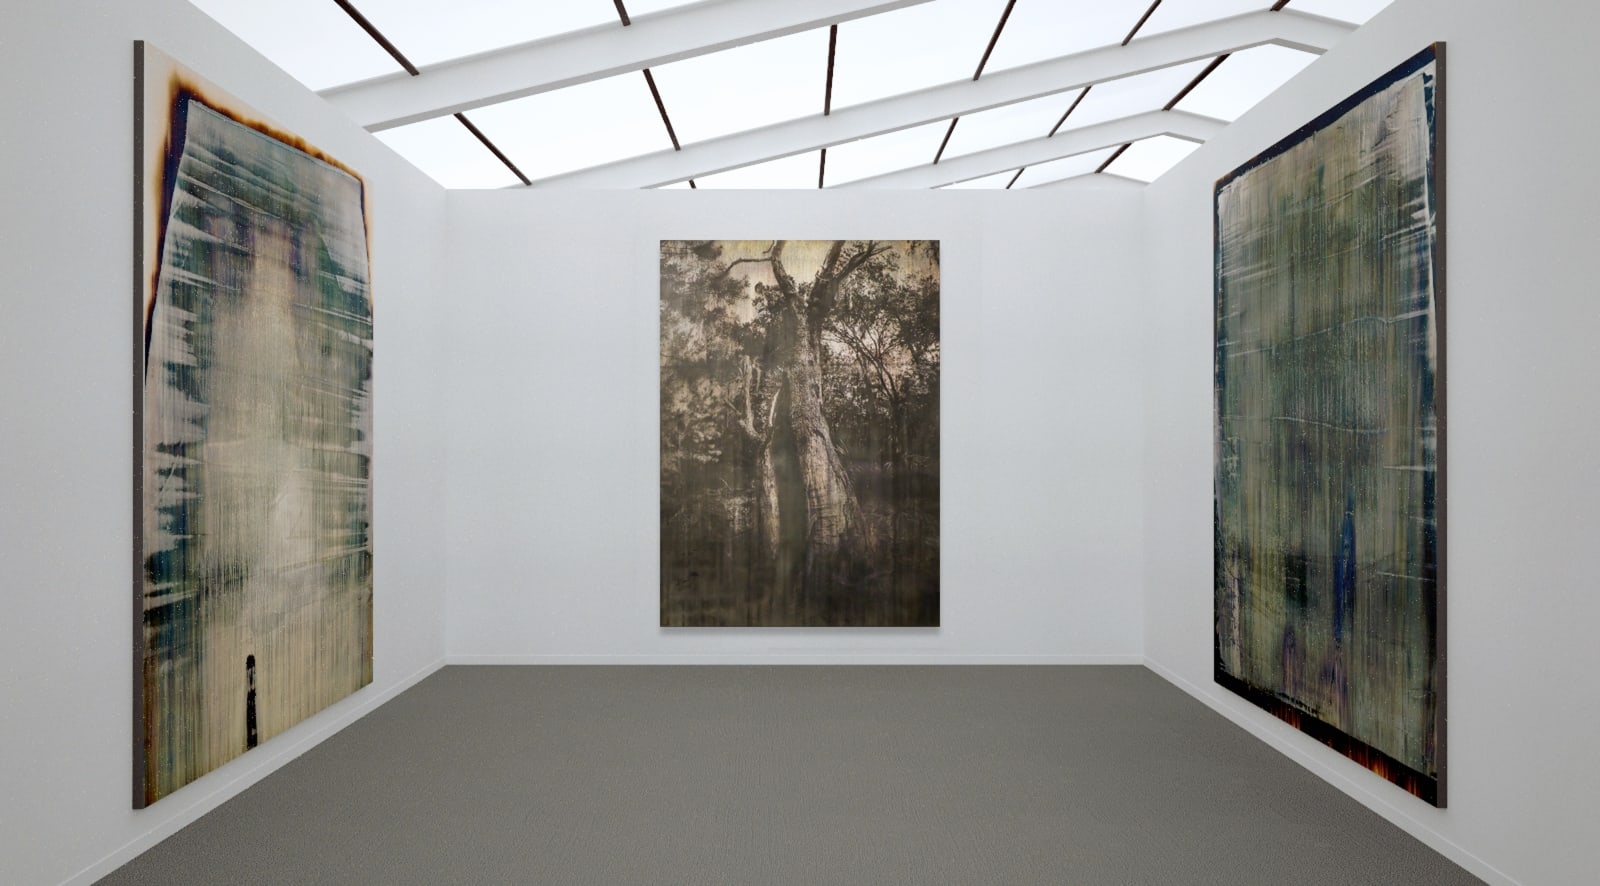 Works by Michael Joo at Frieze New York (Installation View), 2020, Kavi Gupta